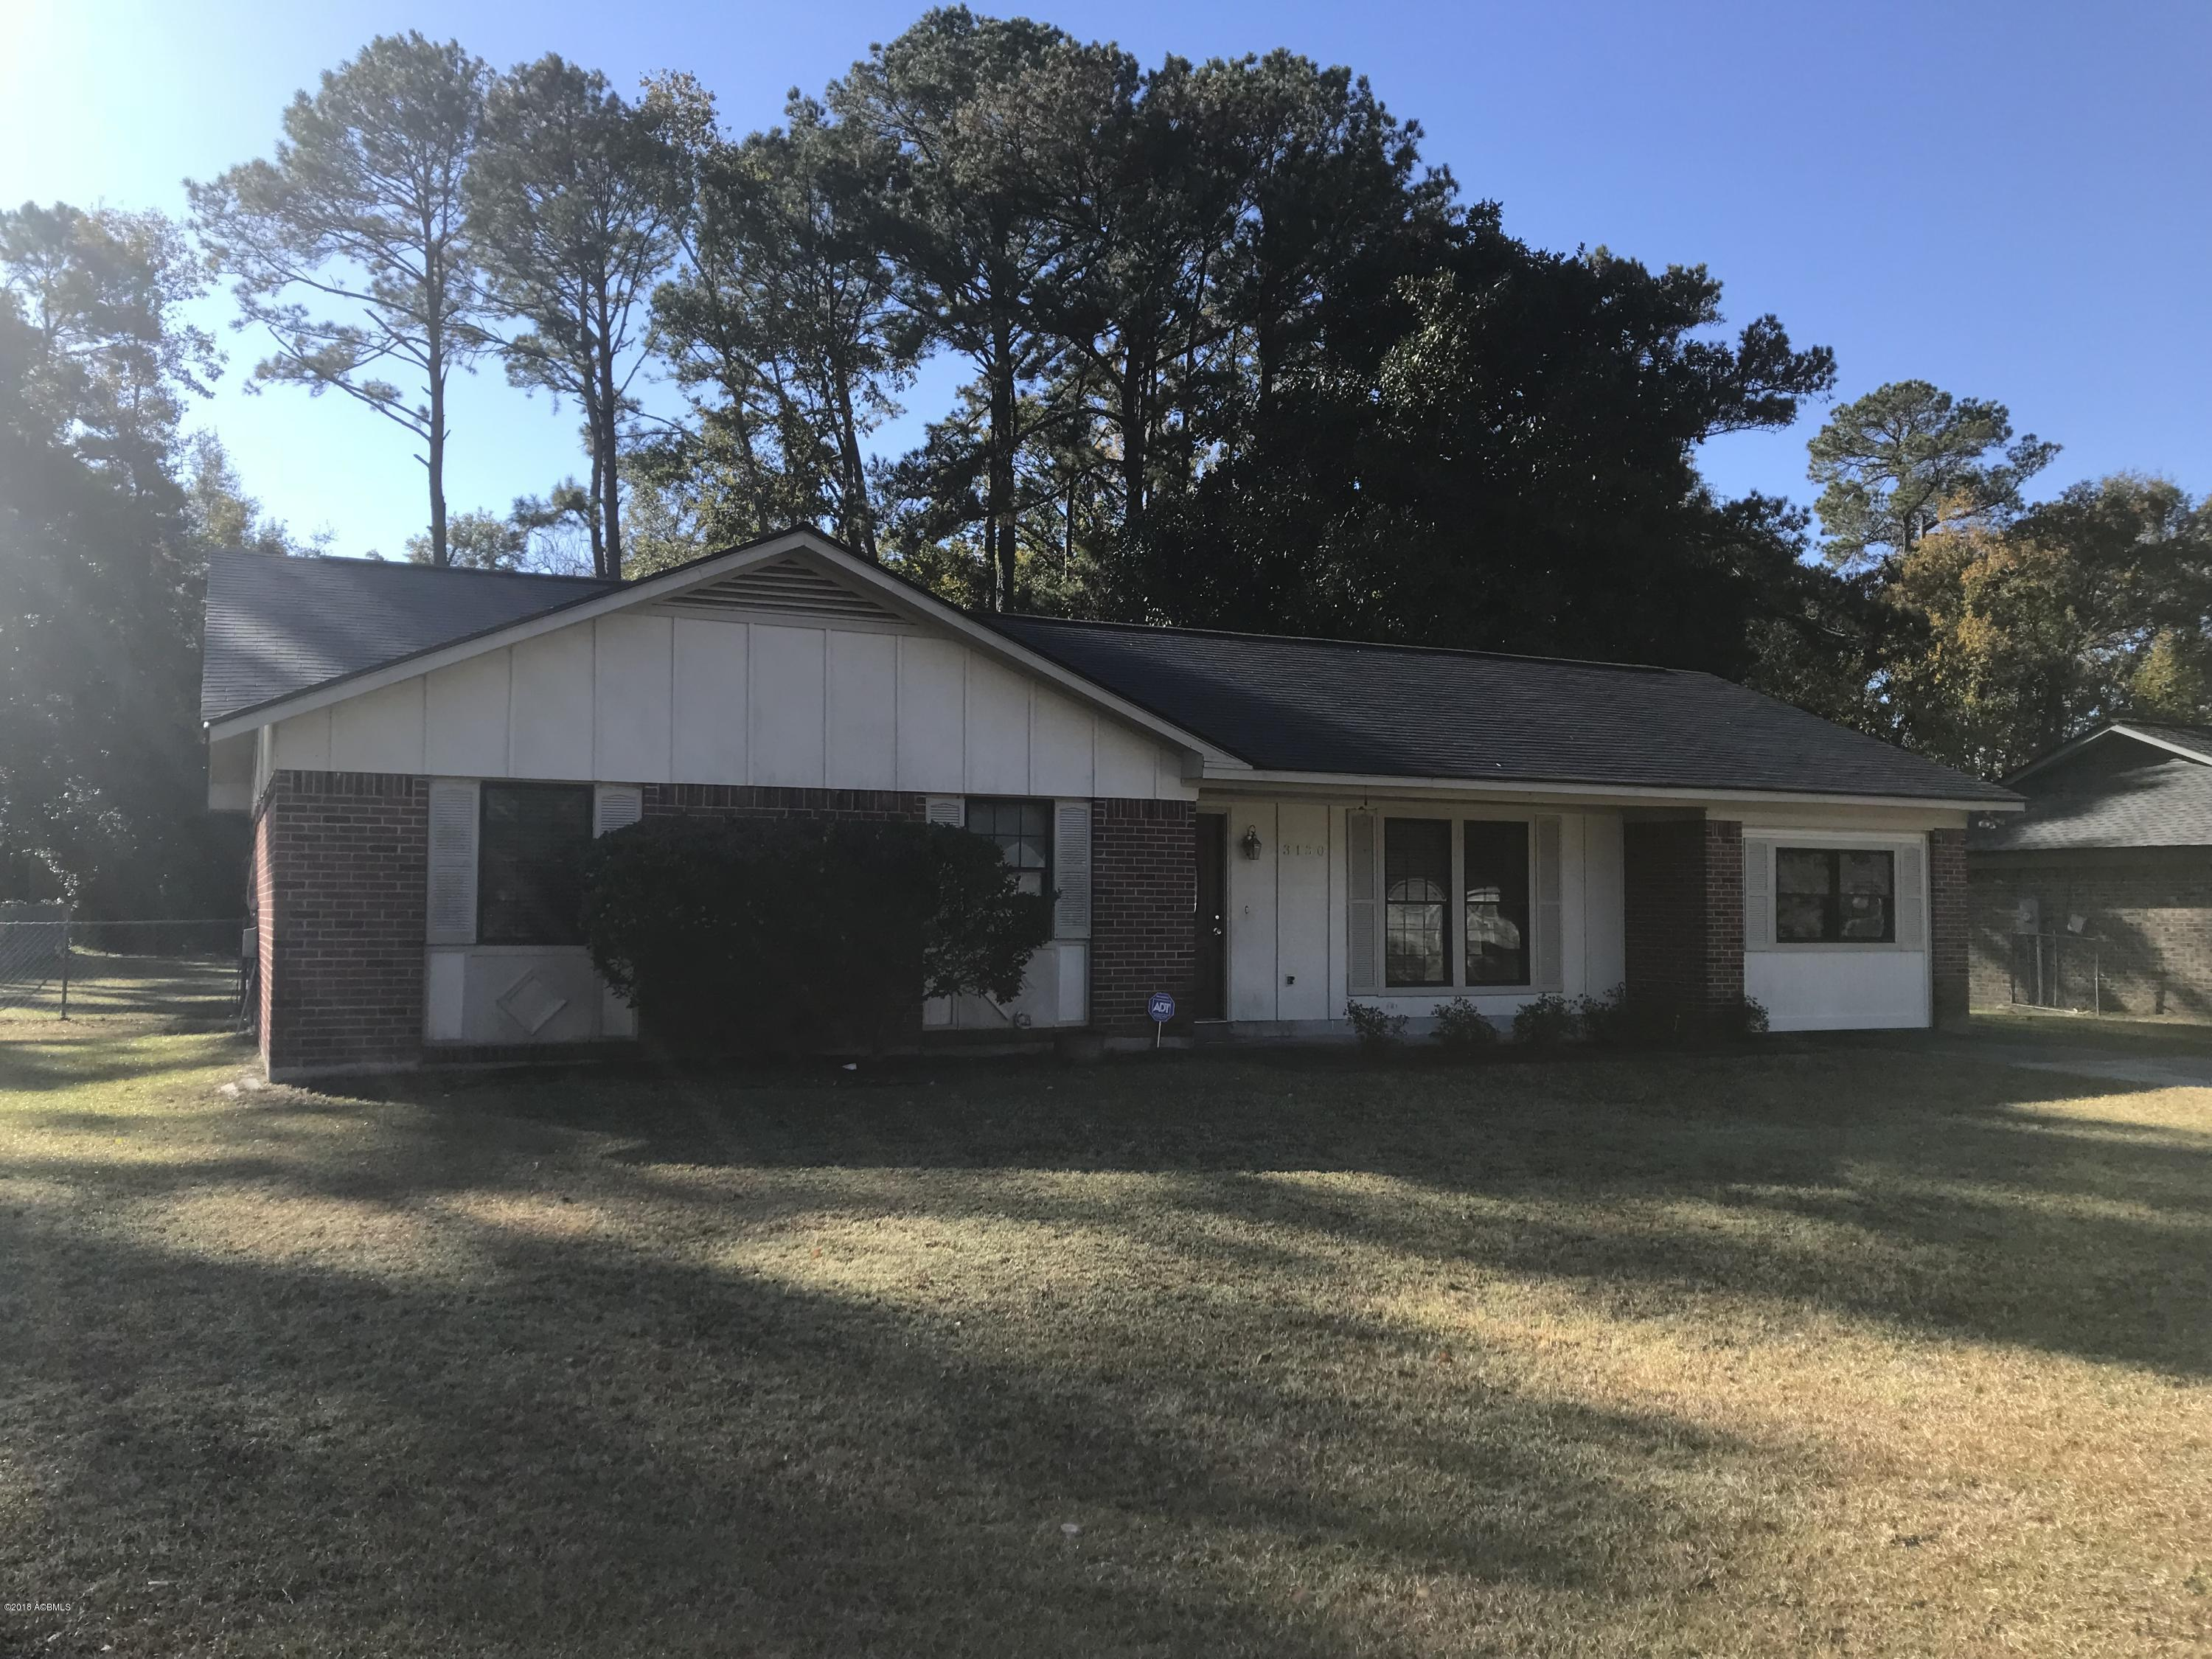 Photo of 3130 Palomino Drive, Beaufort, SC 29906